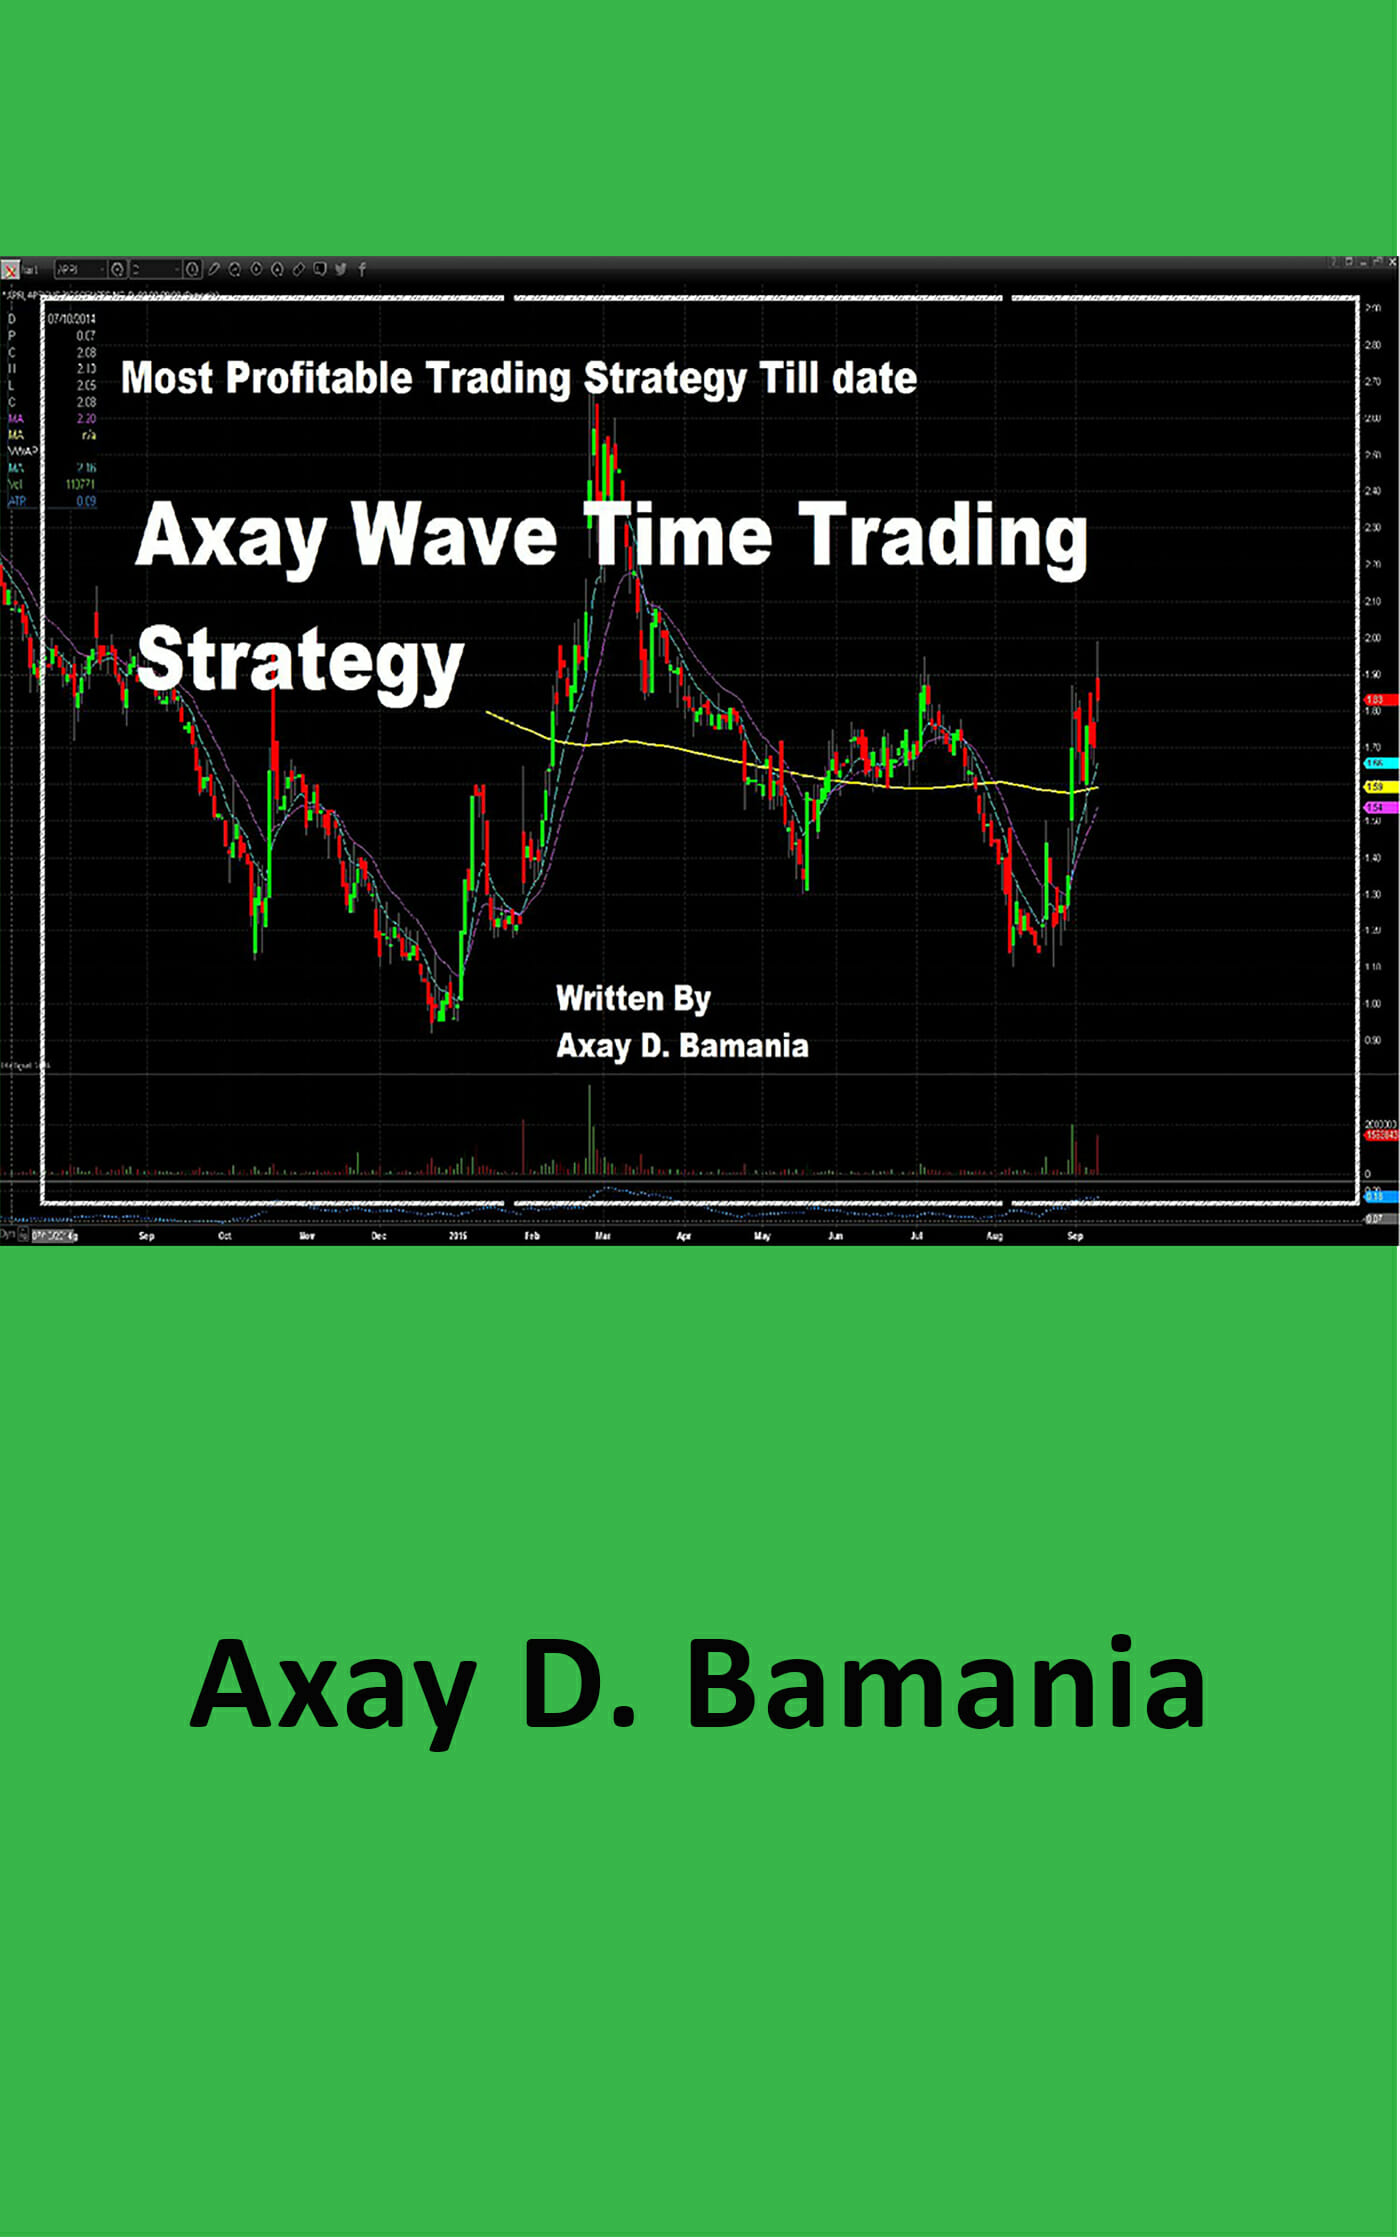 Axay Wave Time Trading Strategy 1